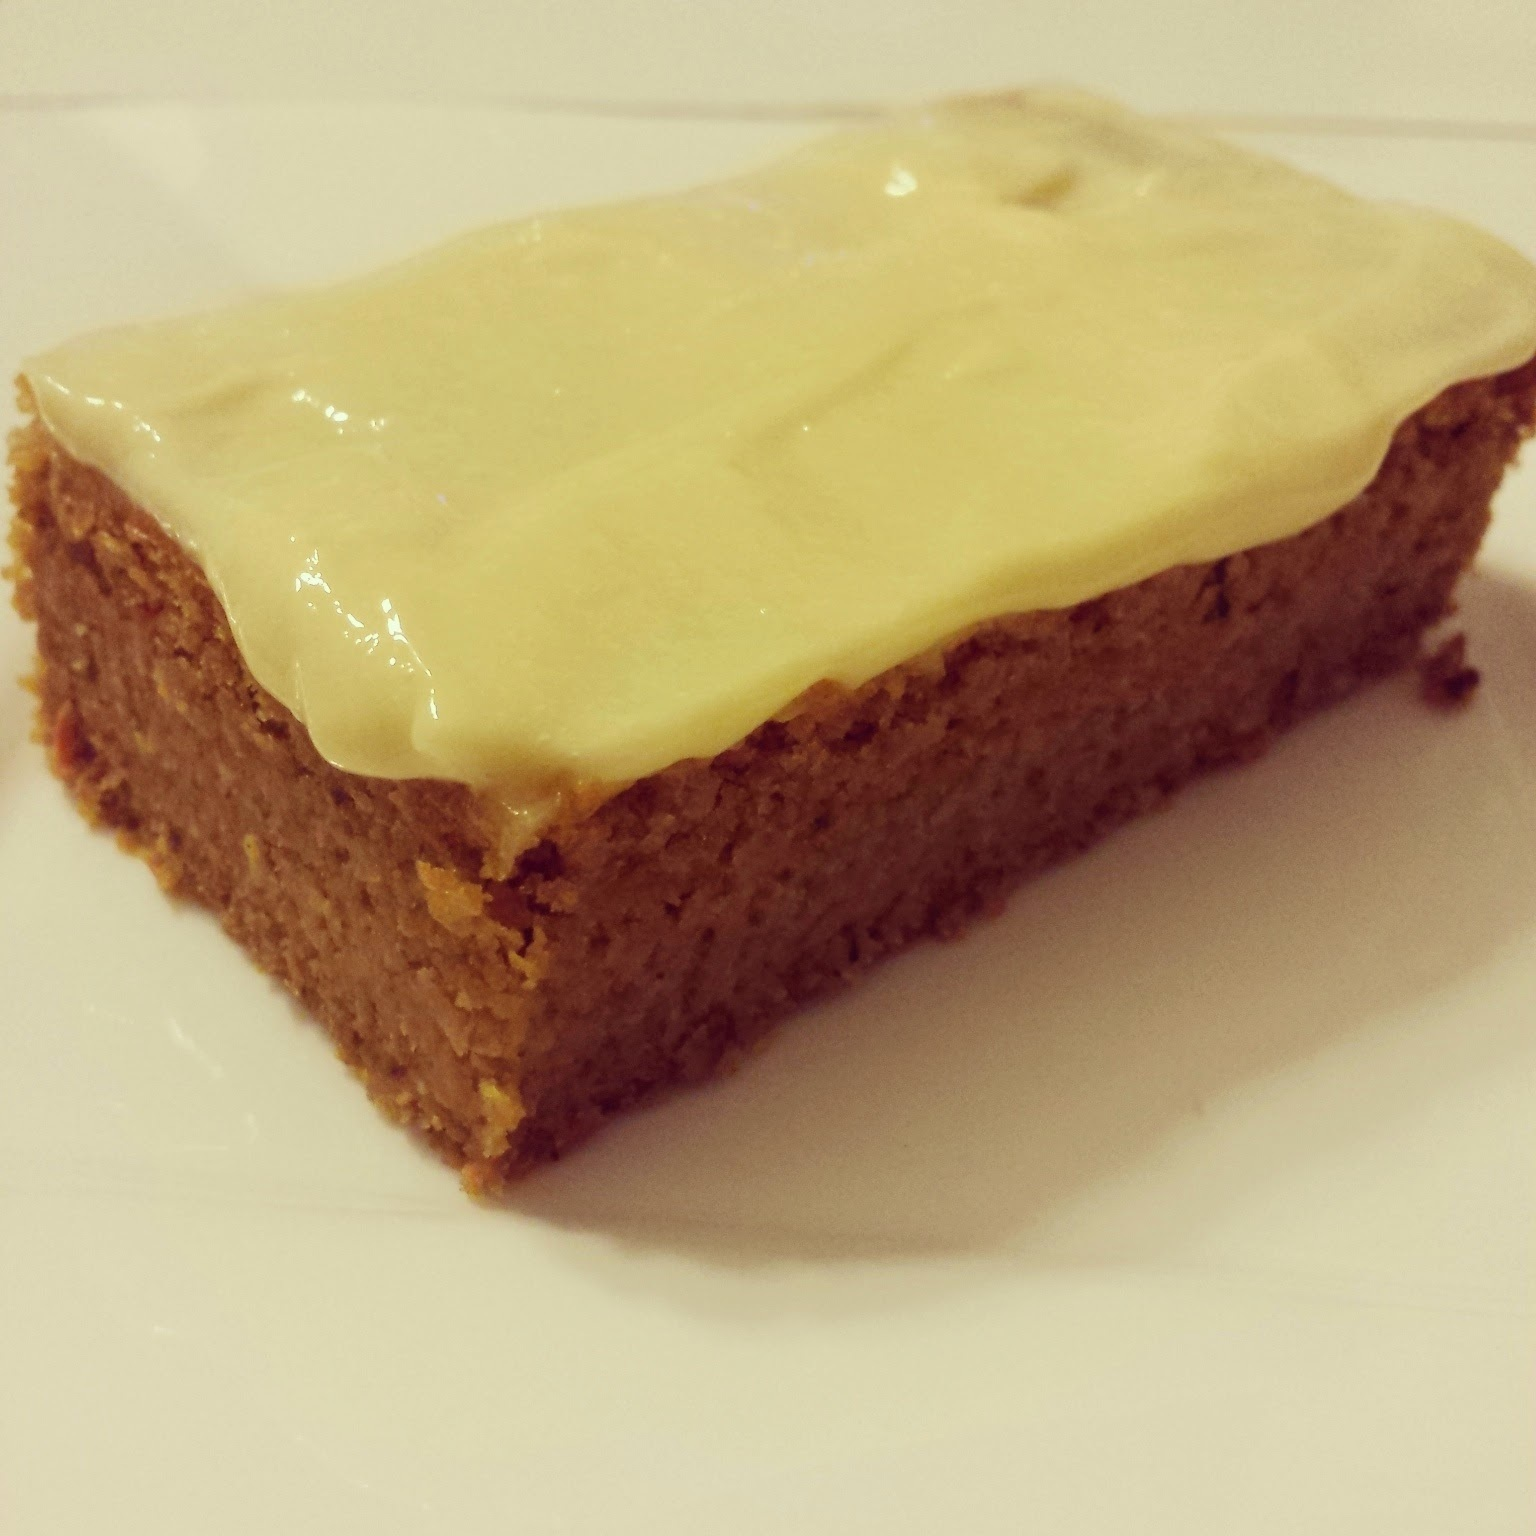 Carrot & Pecan Brownie Topped with Lemon Curd